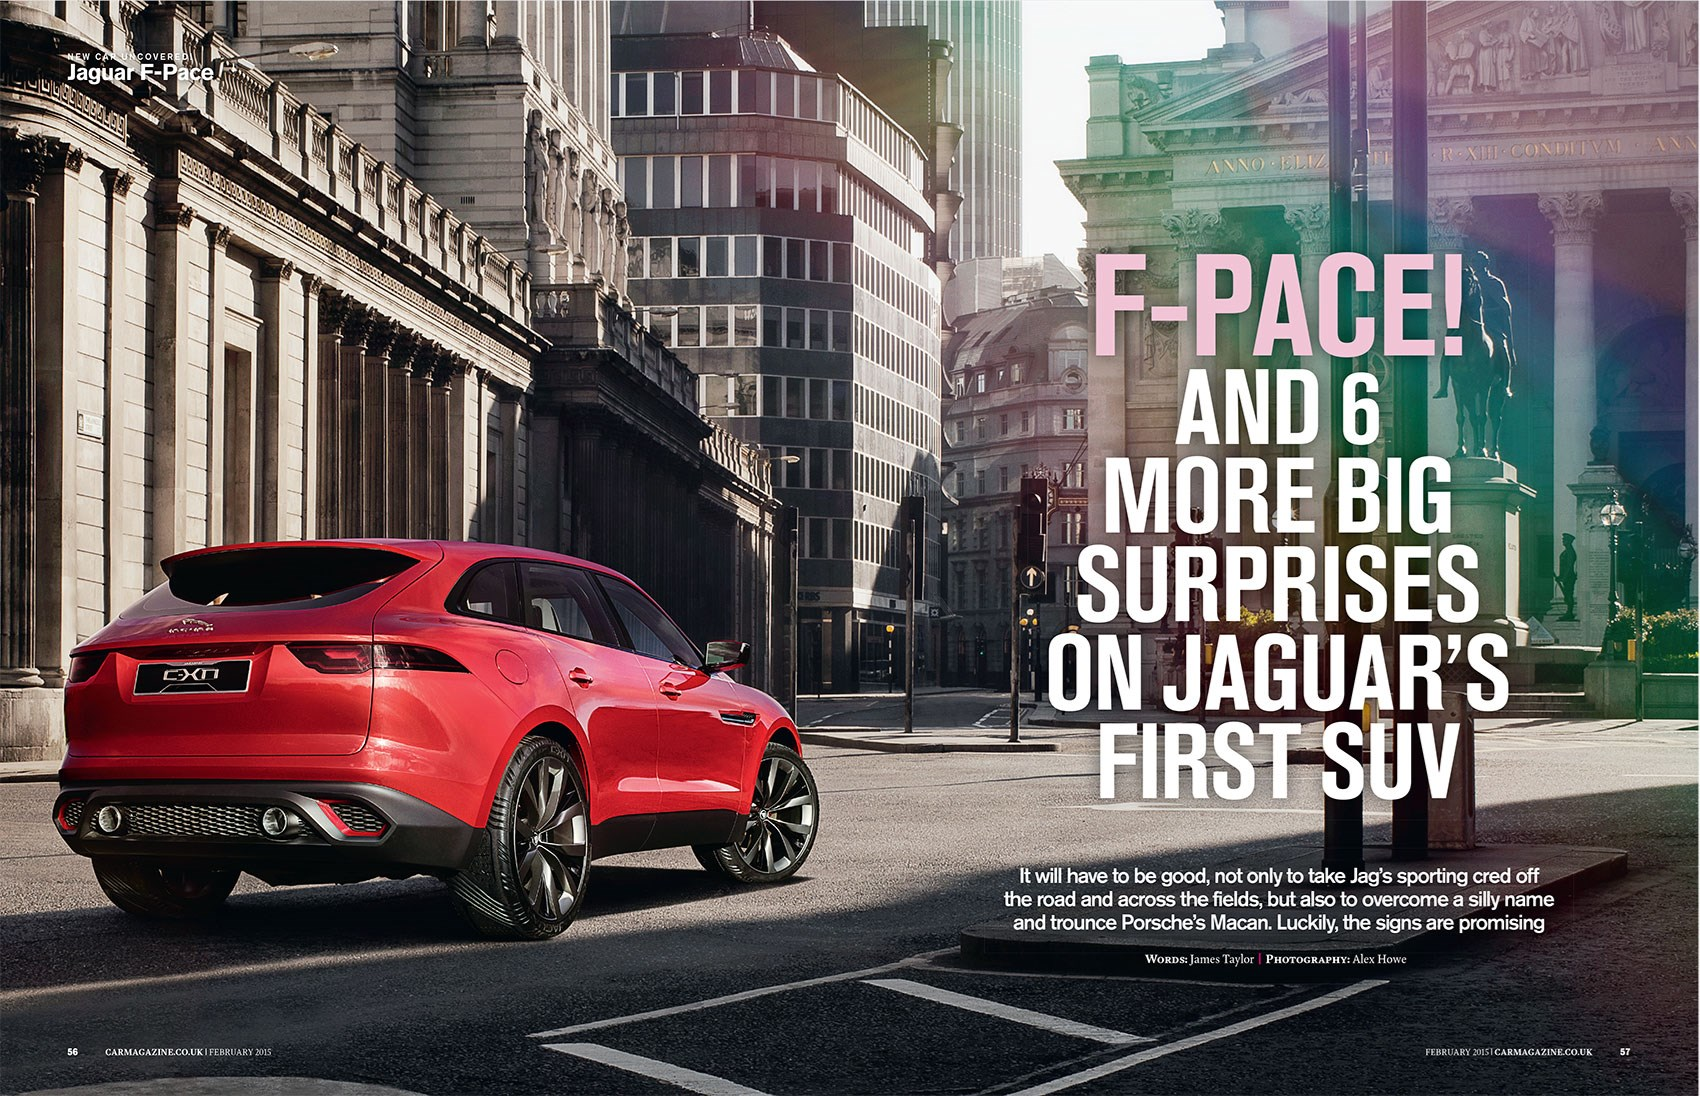 Jaguar F-Pace: CAR magazine, February 2015